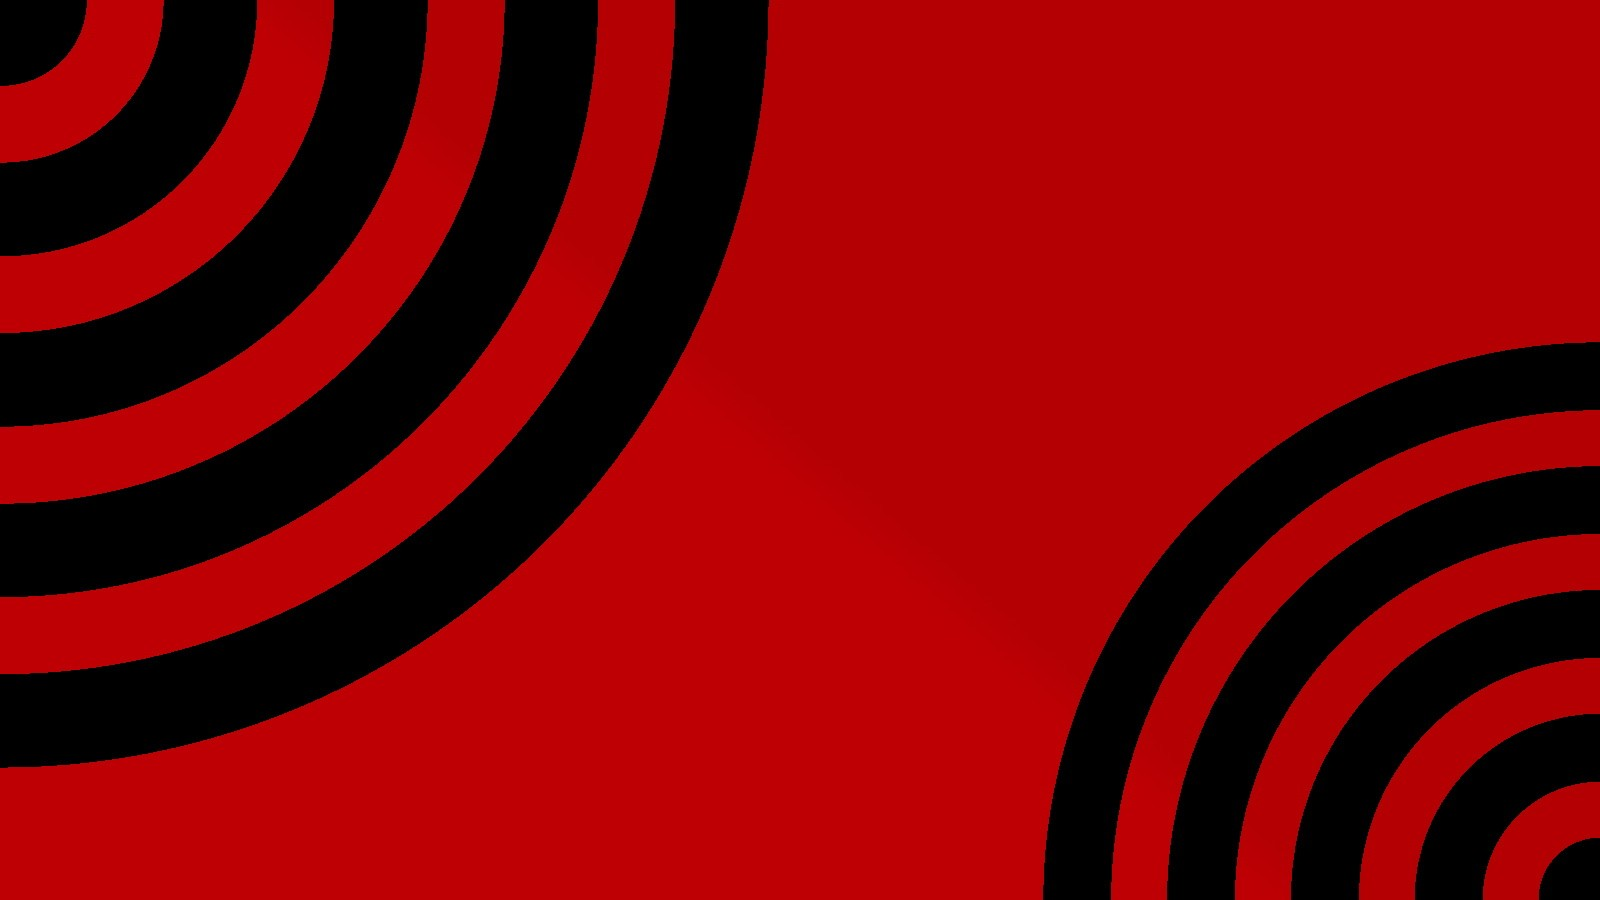 Black Red Waves Circles Psychedelic Simple Background Black And Red Background Hd 749204 Hd Wallpaper Backgrounds Download